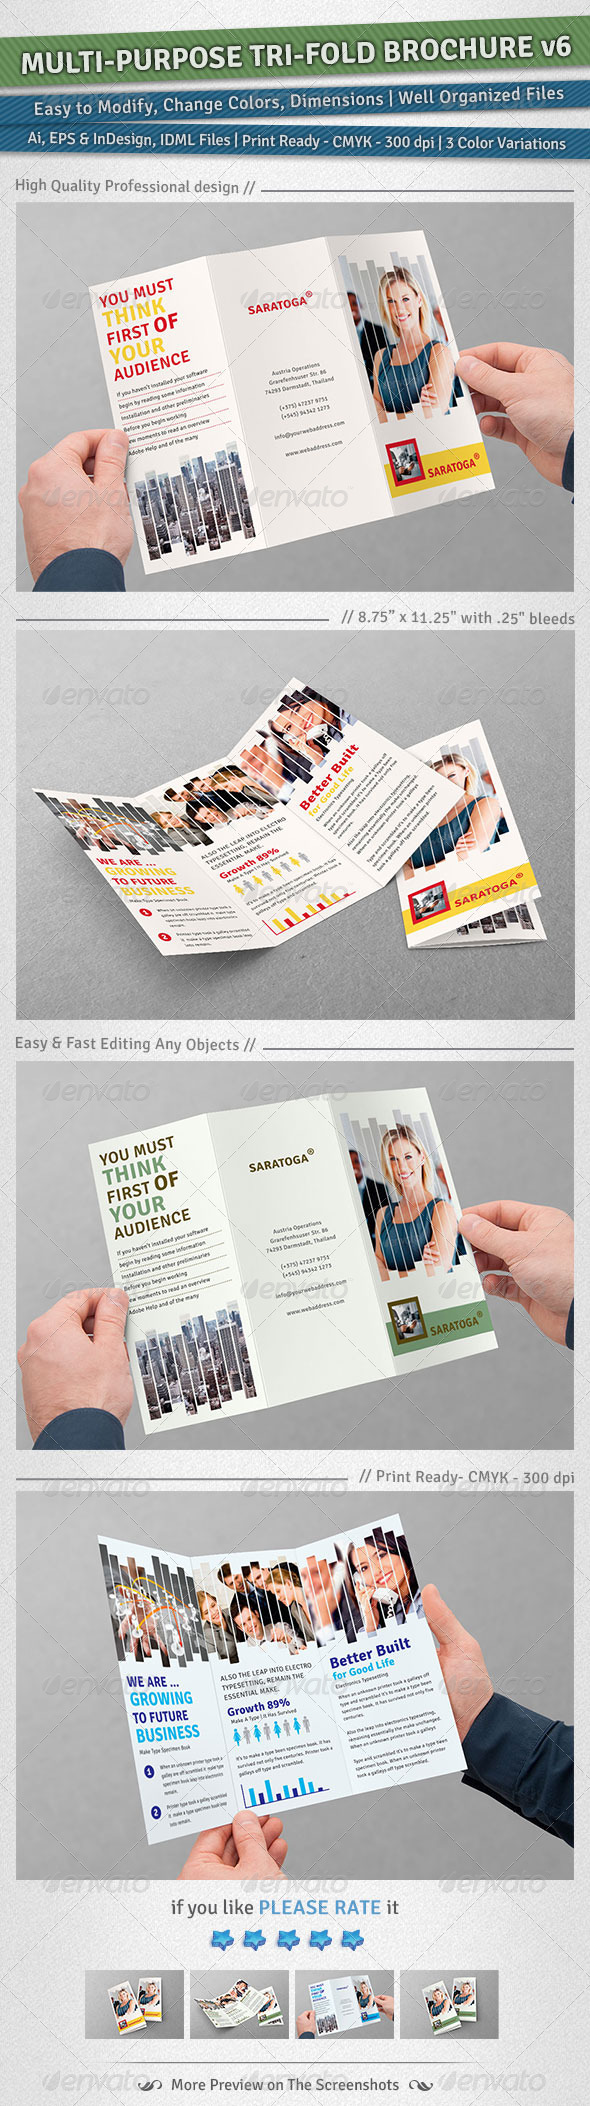 GraphicRiver Multi-purpose Tri-Fold Brochure Volume 6 5065410